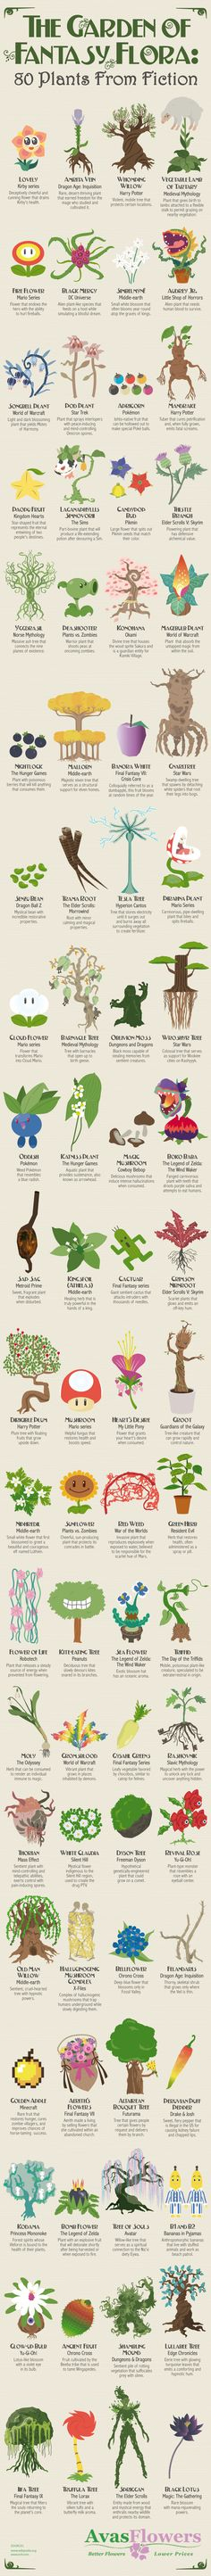 The Garden of Fantasy Flora: 80 Plants from Fiction.